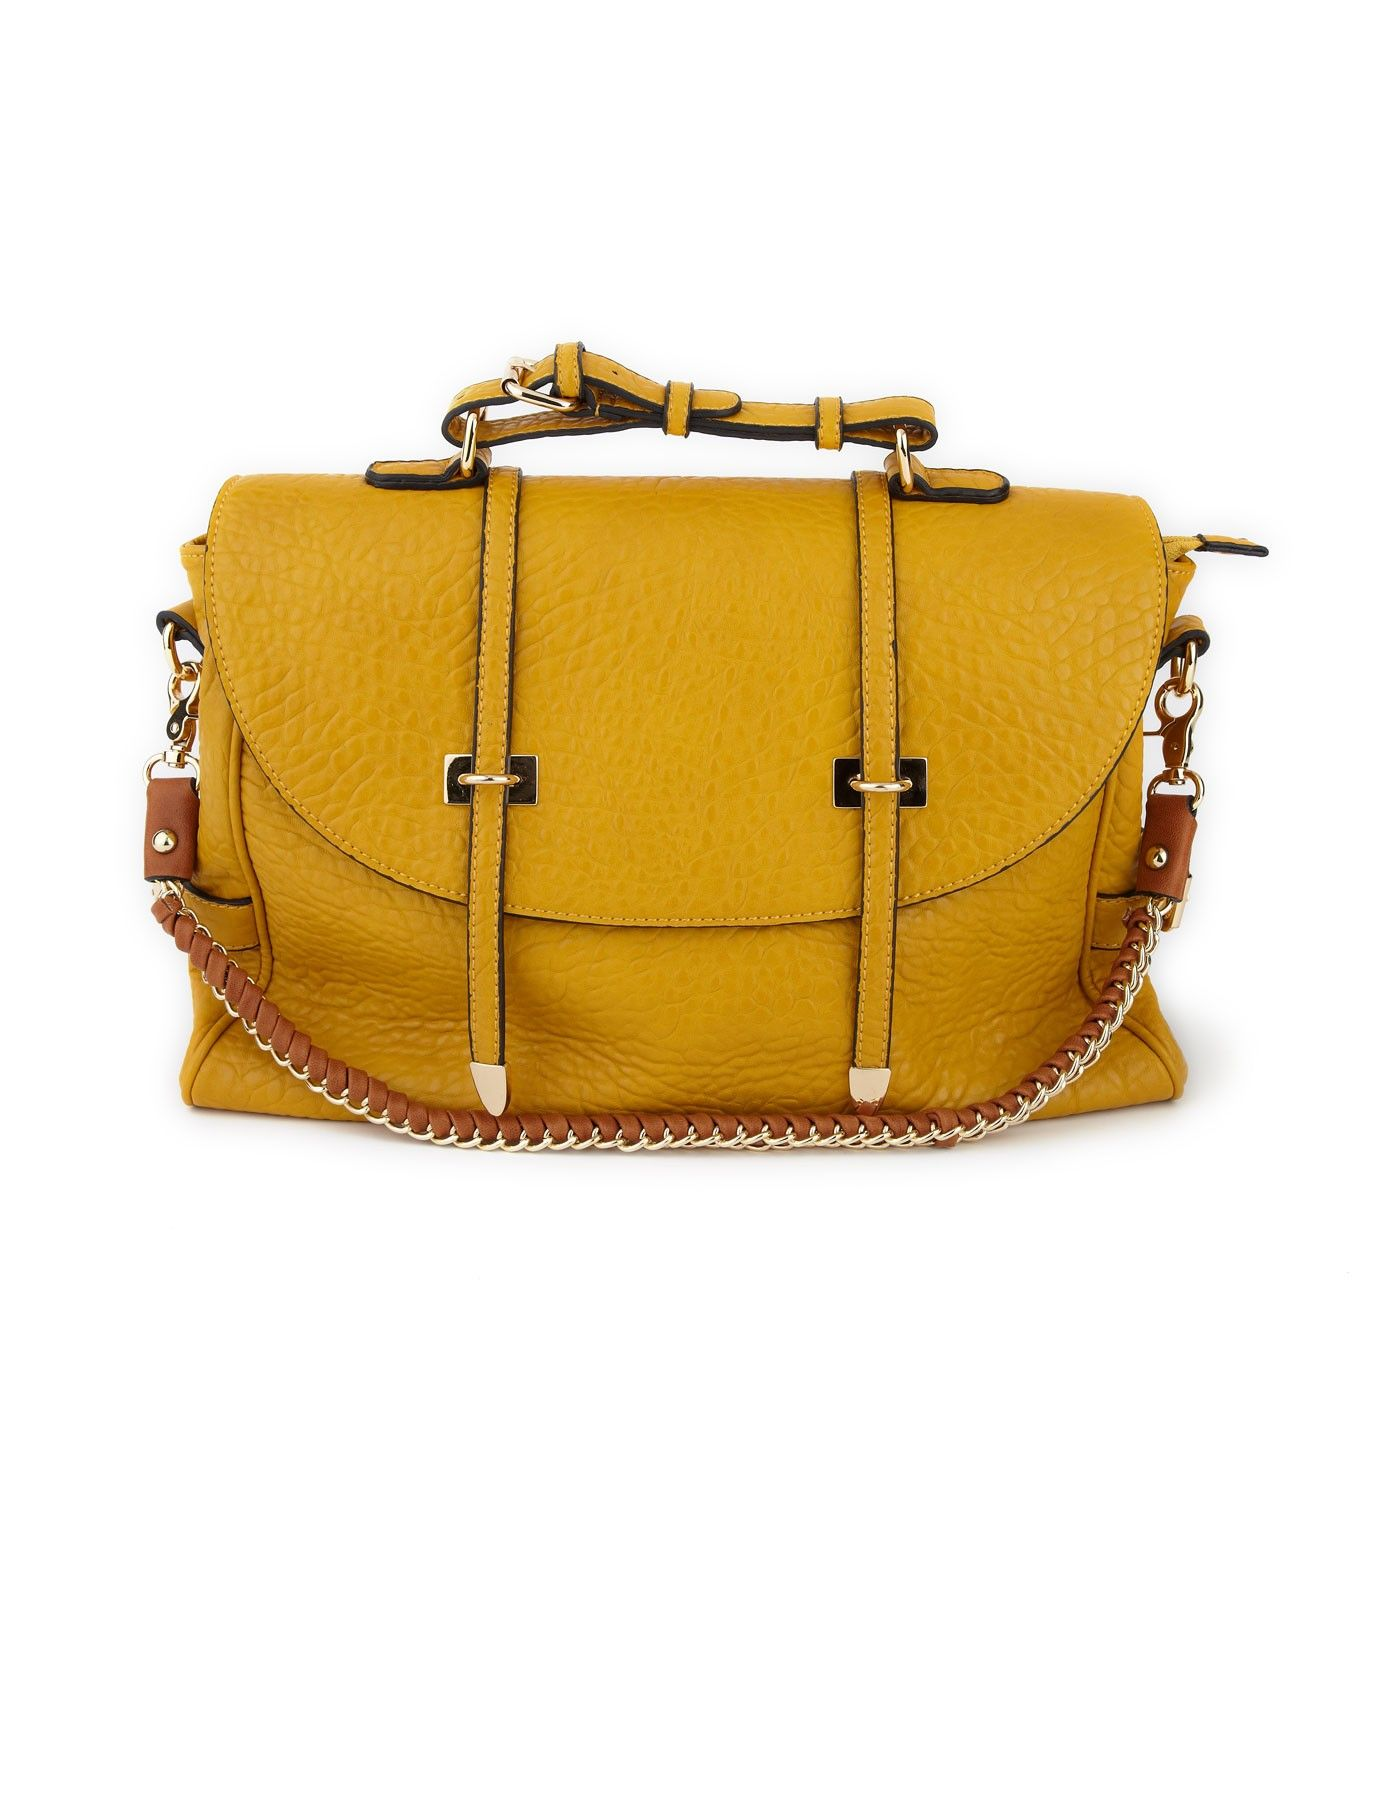 Fabulous shoulder bag - Tassen - Vrouwen - Essentiel Antwerp online store